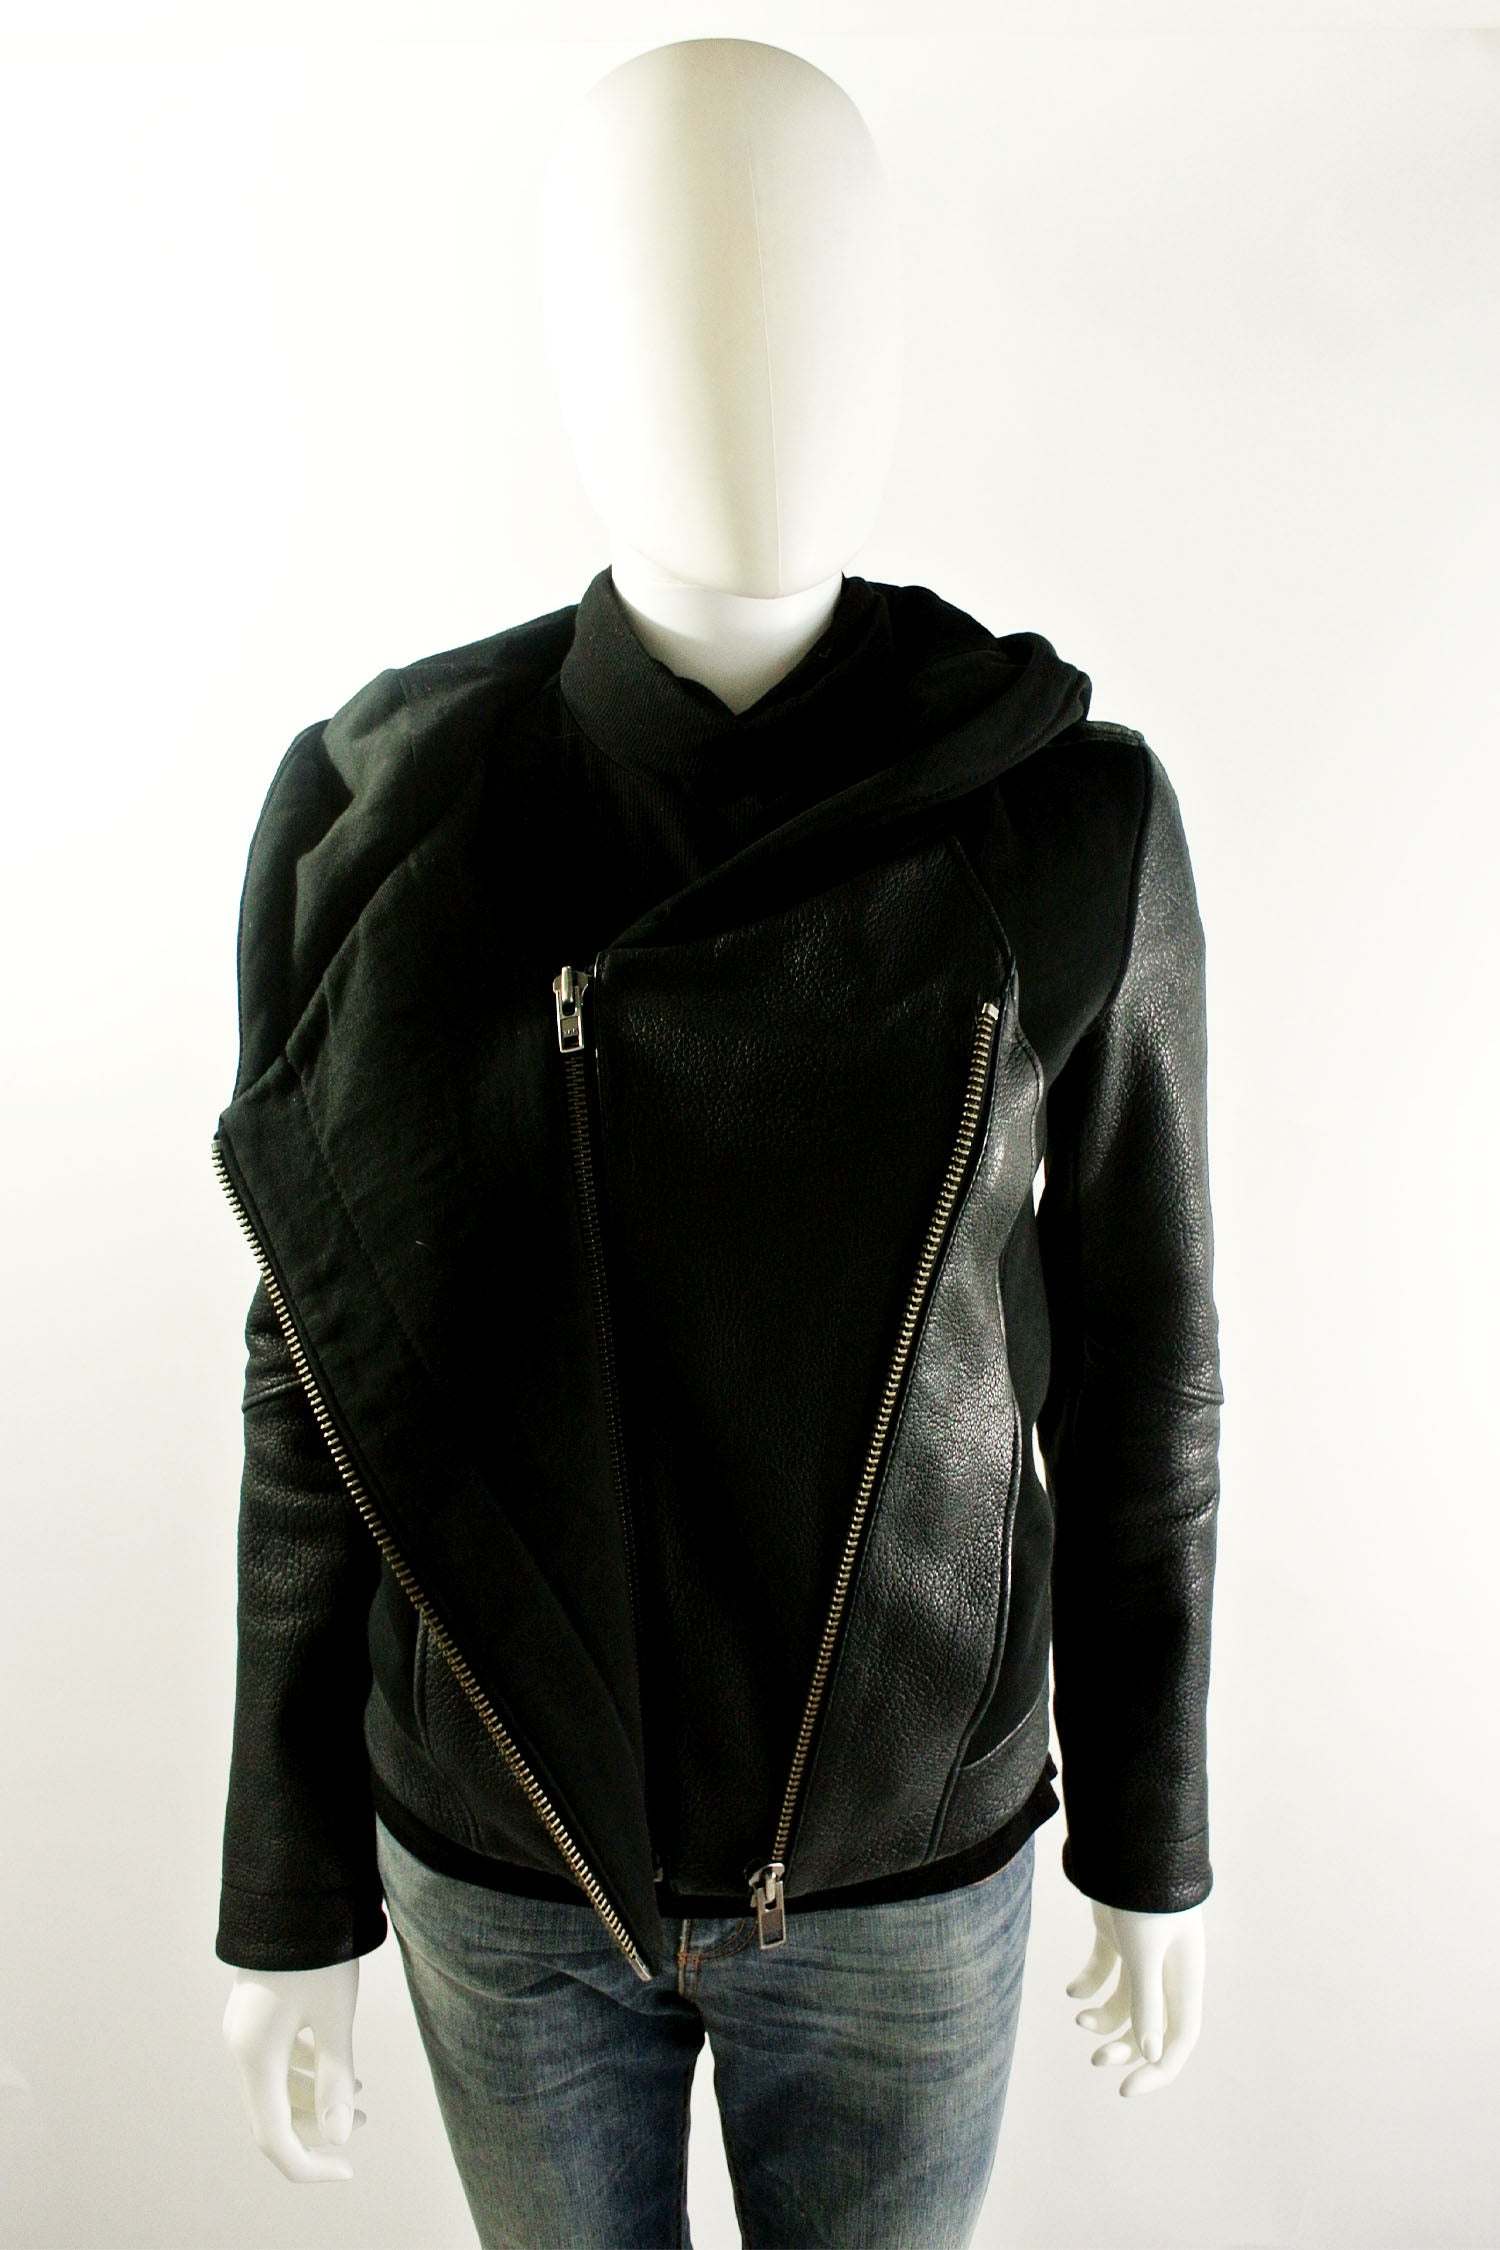 Helmut Lang Hooded Leather Jacket sz P